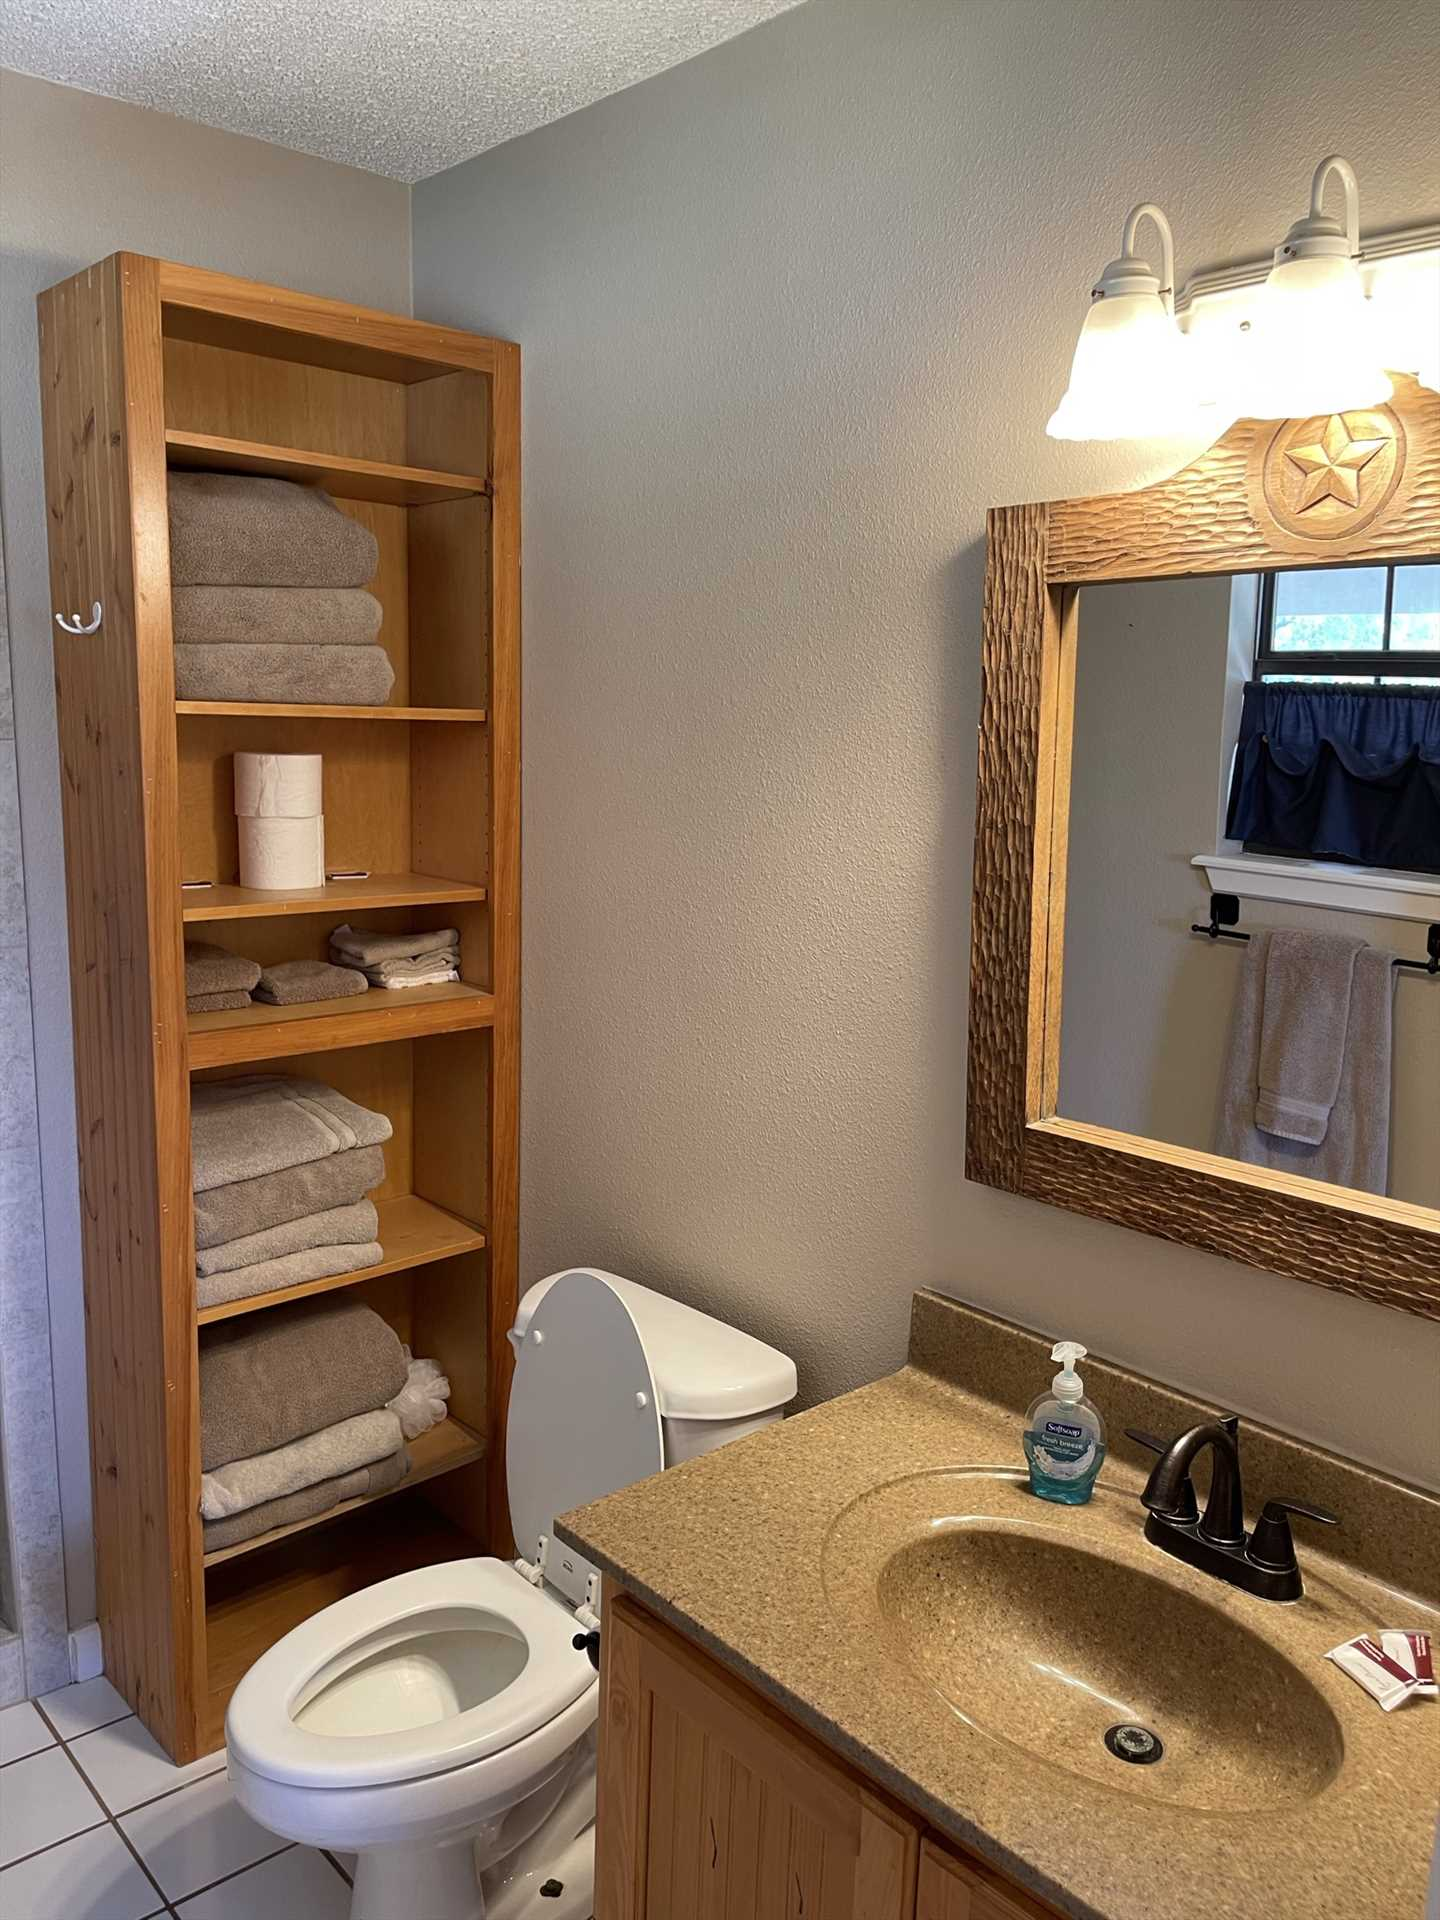 There's a nice, big mirrored vanity in the master bath, too! Plenty of clean bathroom linens are included.